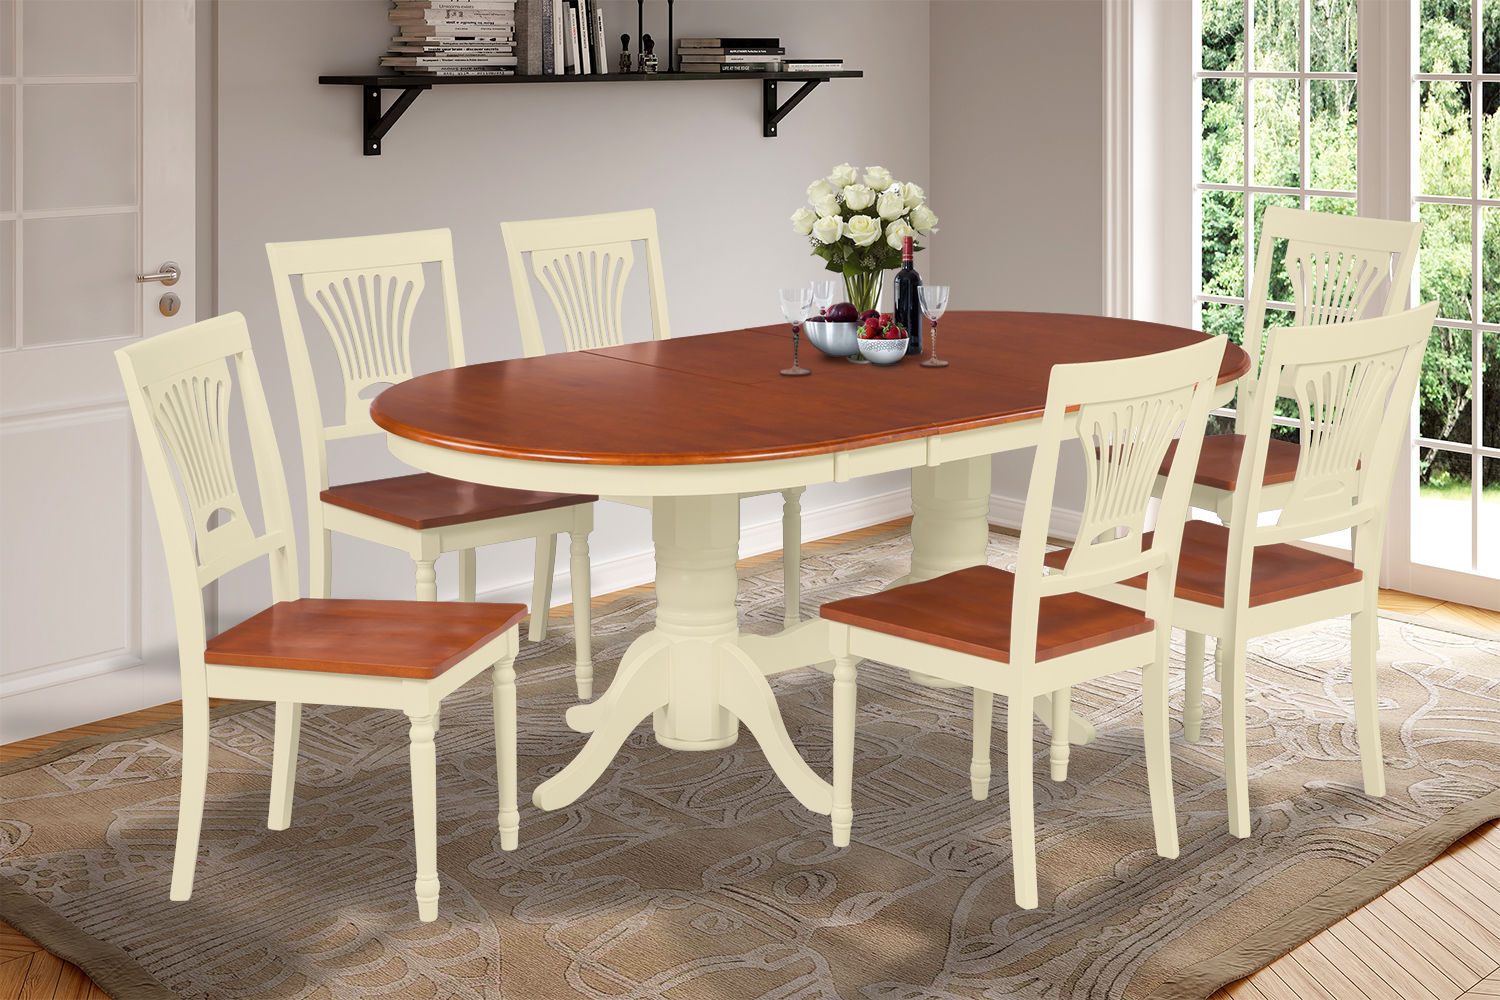 7-PC OVAL DINETTE DINING ROOM TABLE SET w/ 6 CHAIRS IN  BUTTERMILK &CHERRY